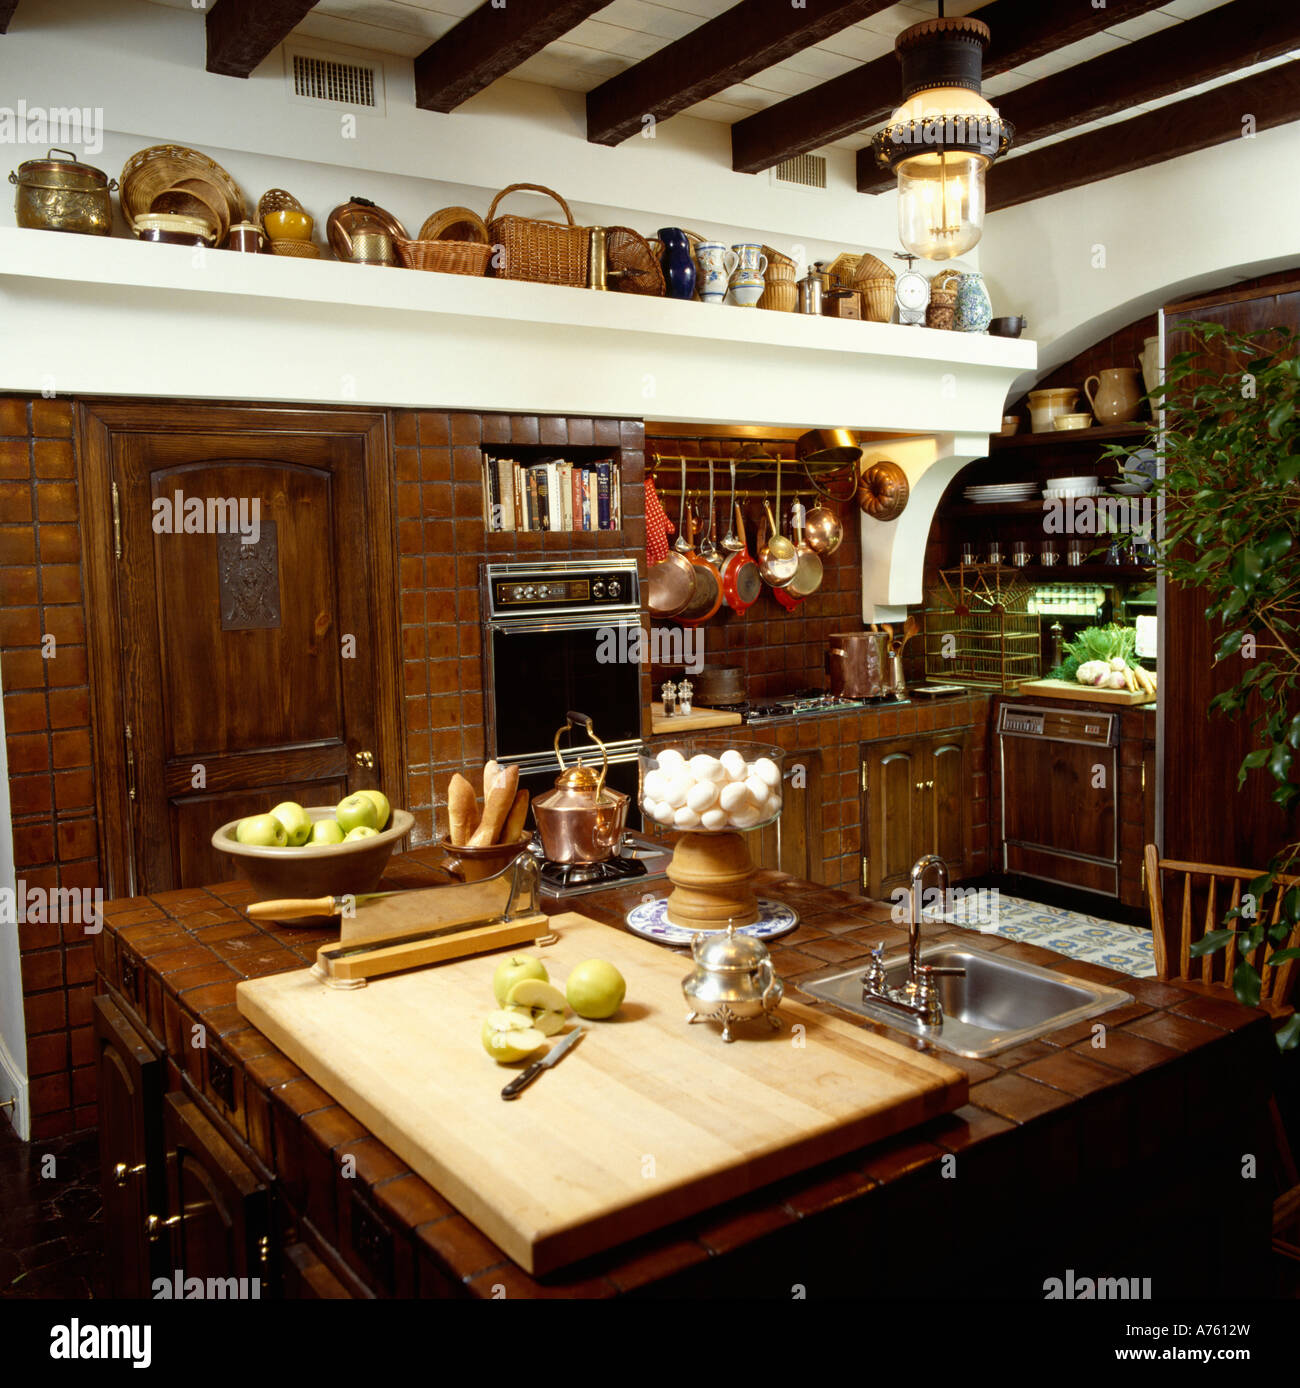 Large Wooden Chopping Board On Island Kitchen Unit With Integral Sink Stock Photo Alamy